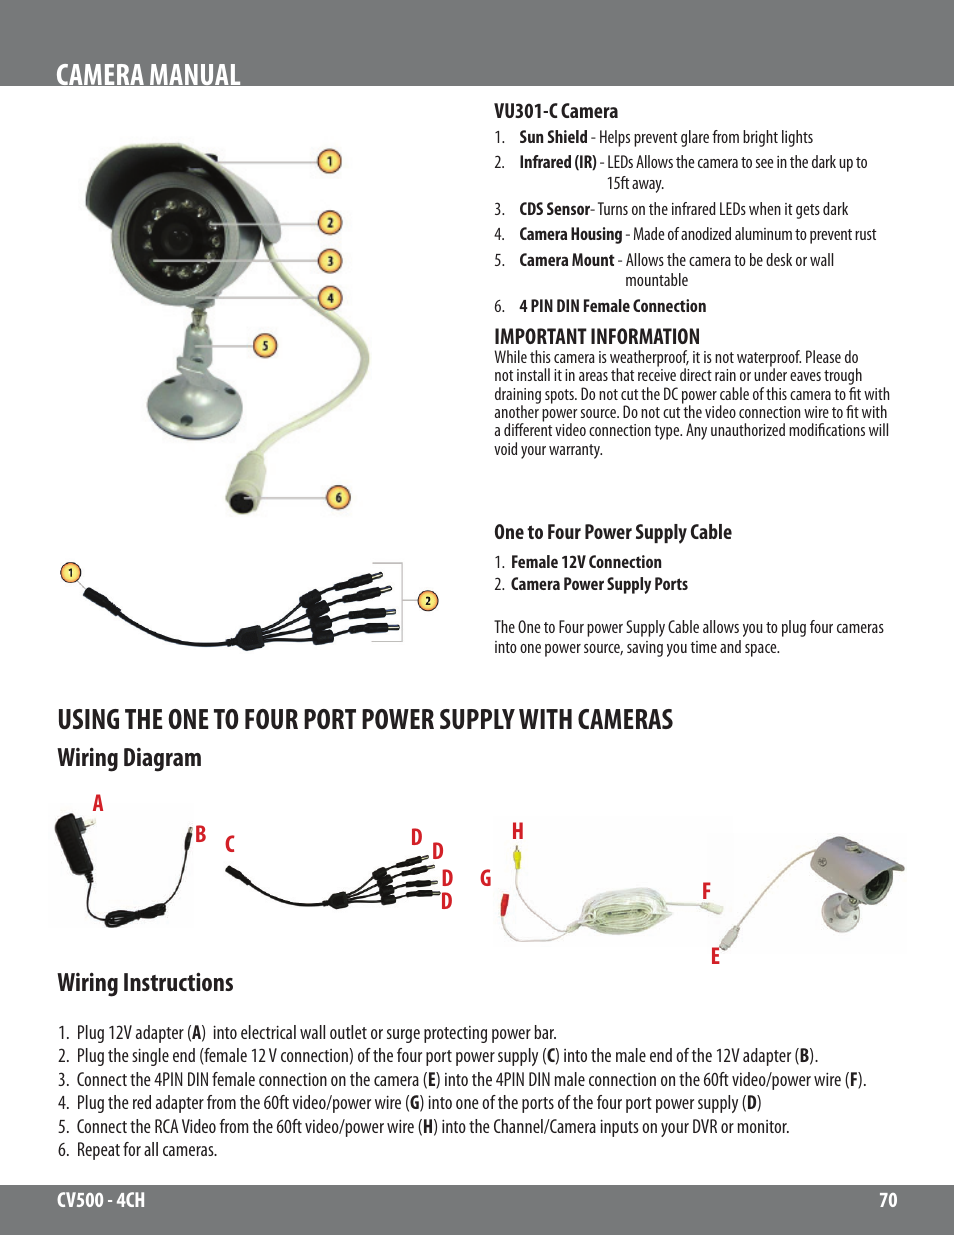 Camera manual, Wiring diagram wiring instructions | SVAT Electronics 2CV500  - 4CH User Manual | Page 70 / 74